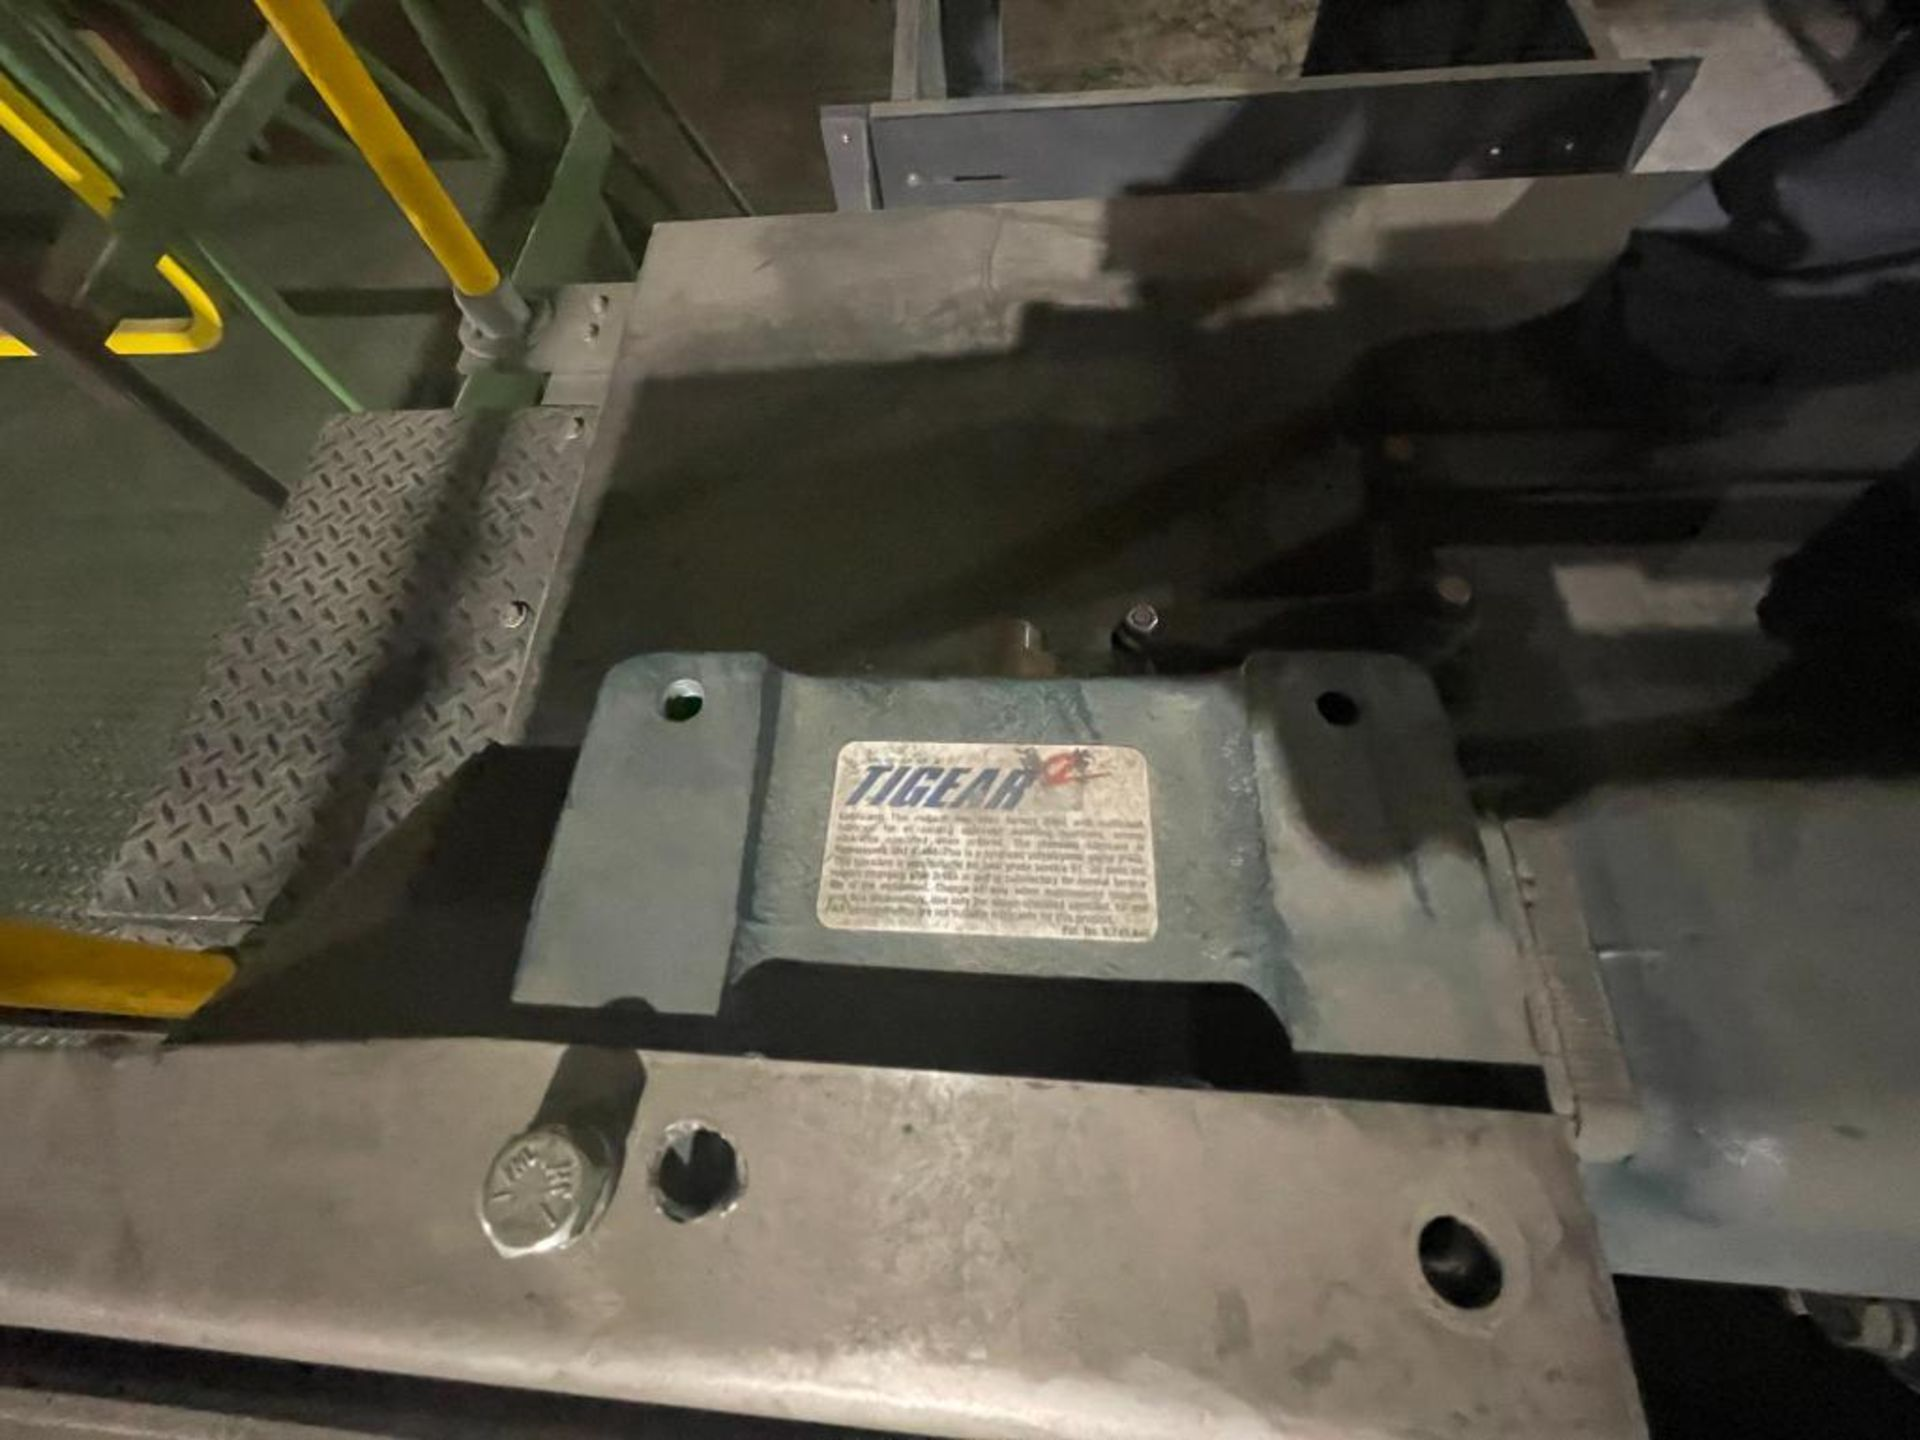 2008 Currie top to bottom palletizer, model PALLETIZER, sn 3348 - Image 23 of 28